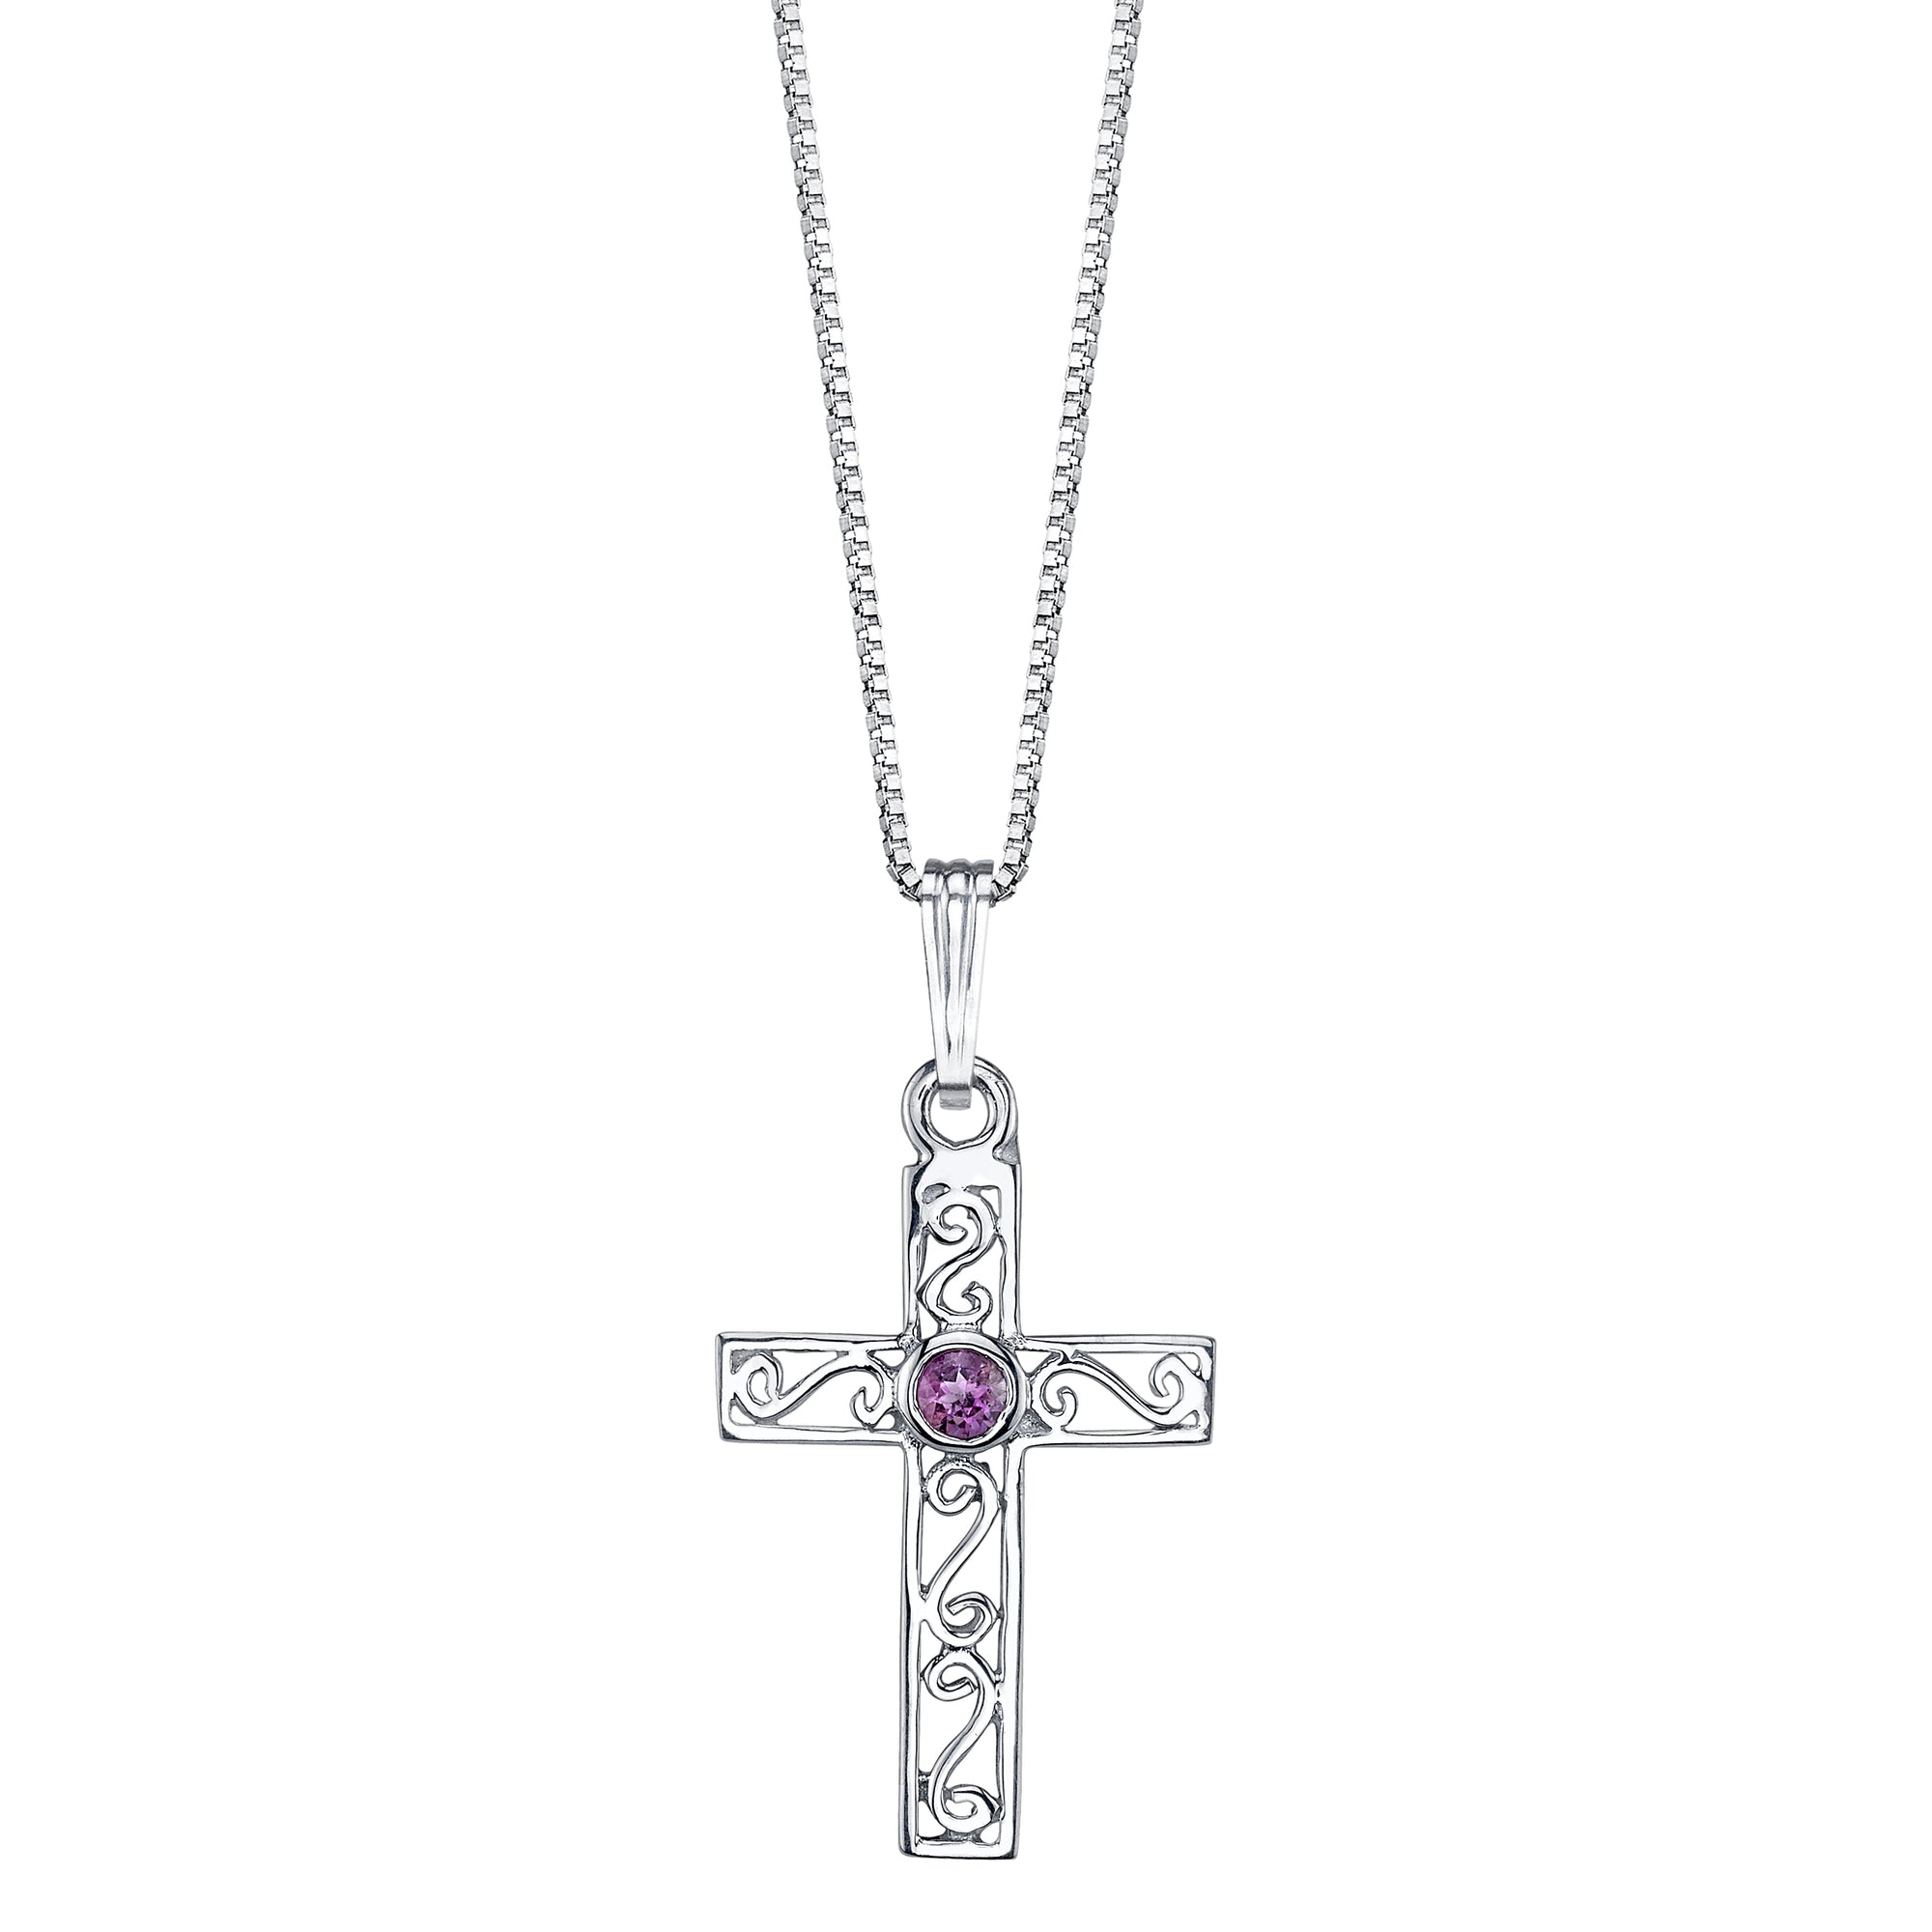 Delicate Cross Pendant with Stone